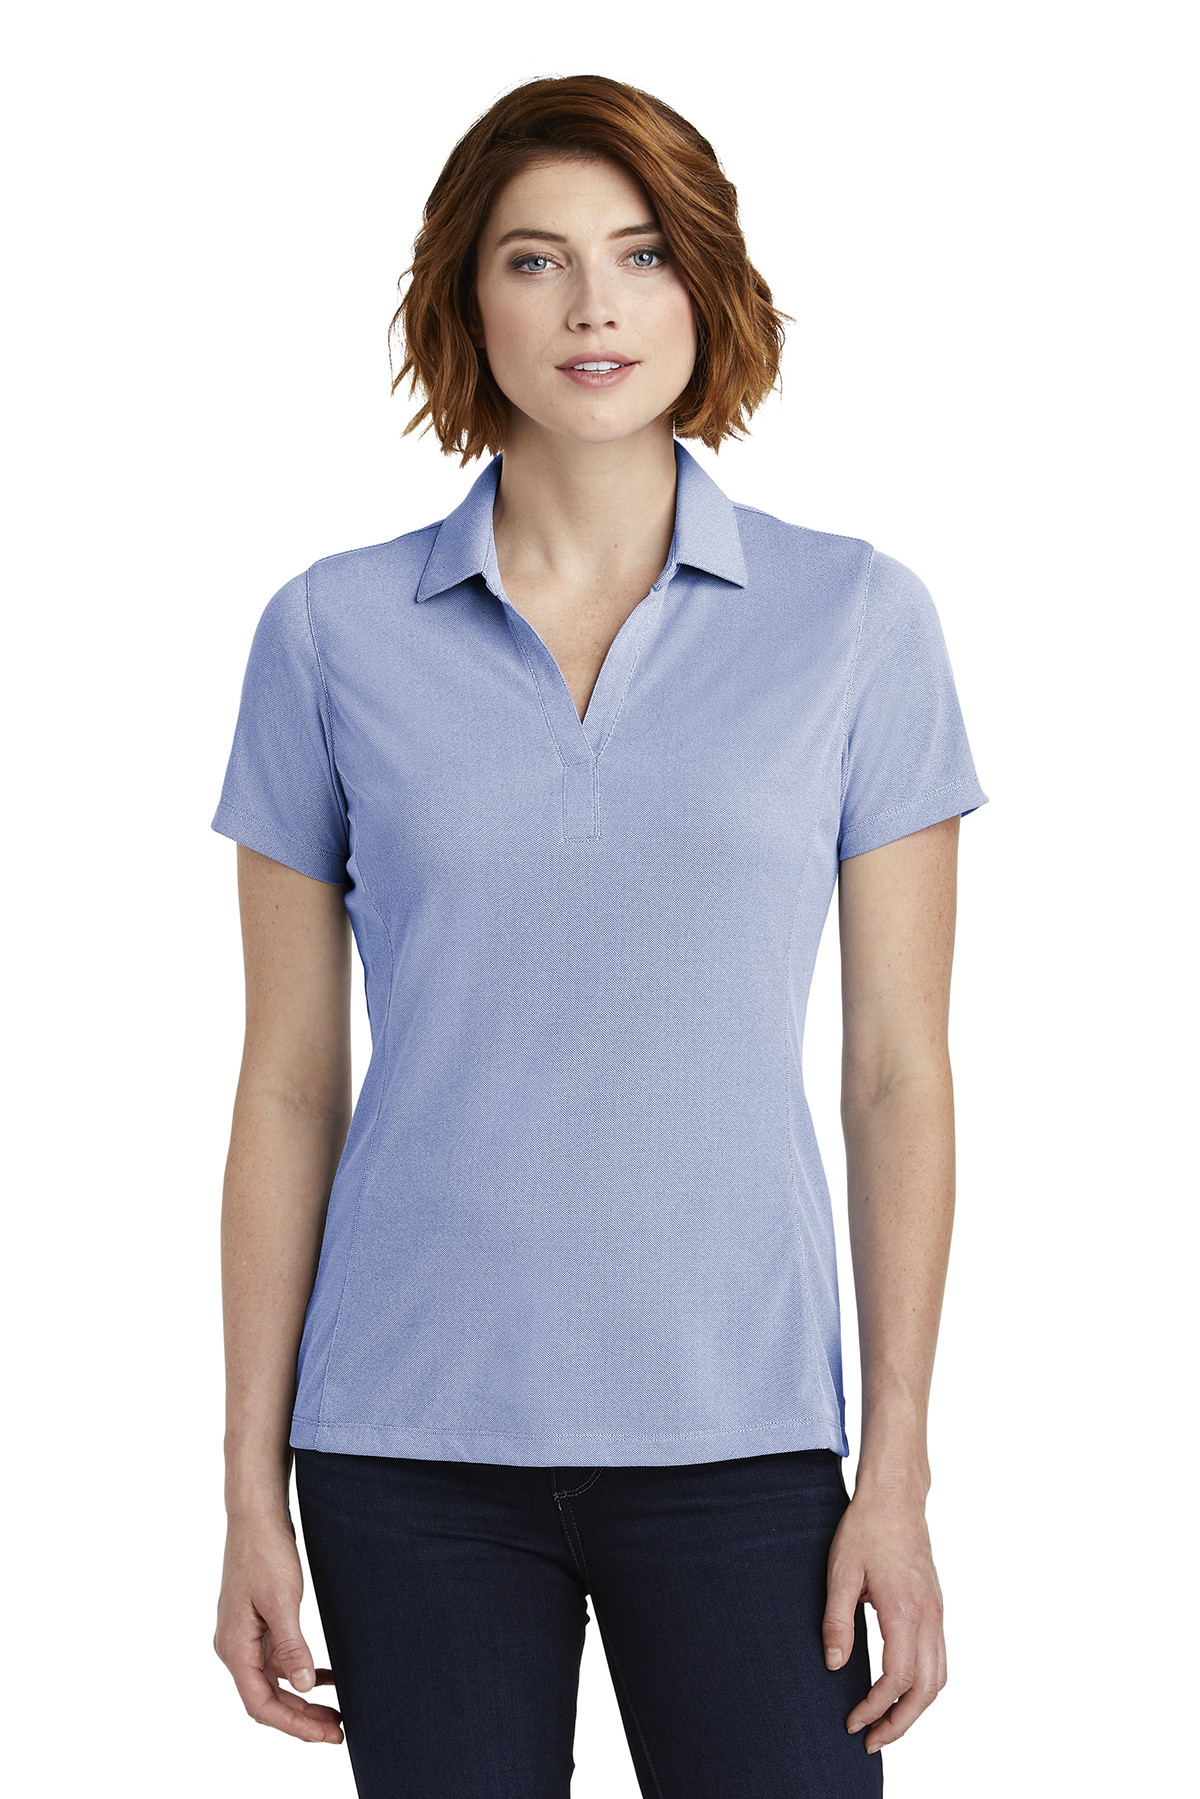 Port Authority LK582 - Ladies Poly Oxford Pique Polo